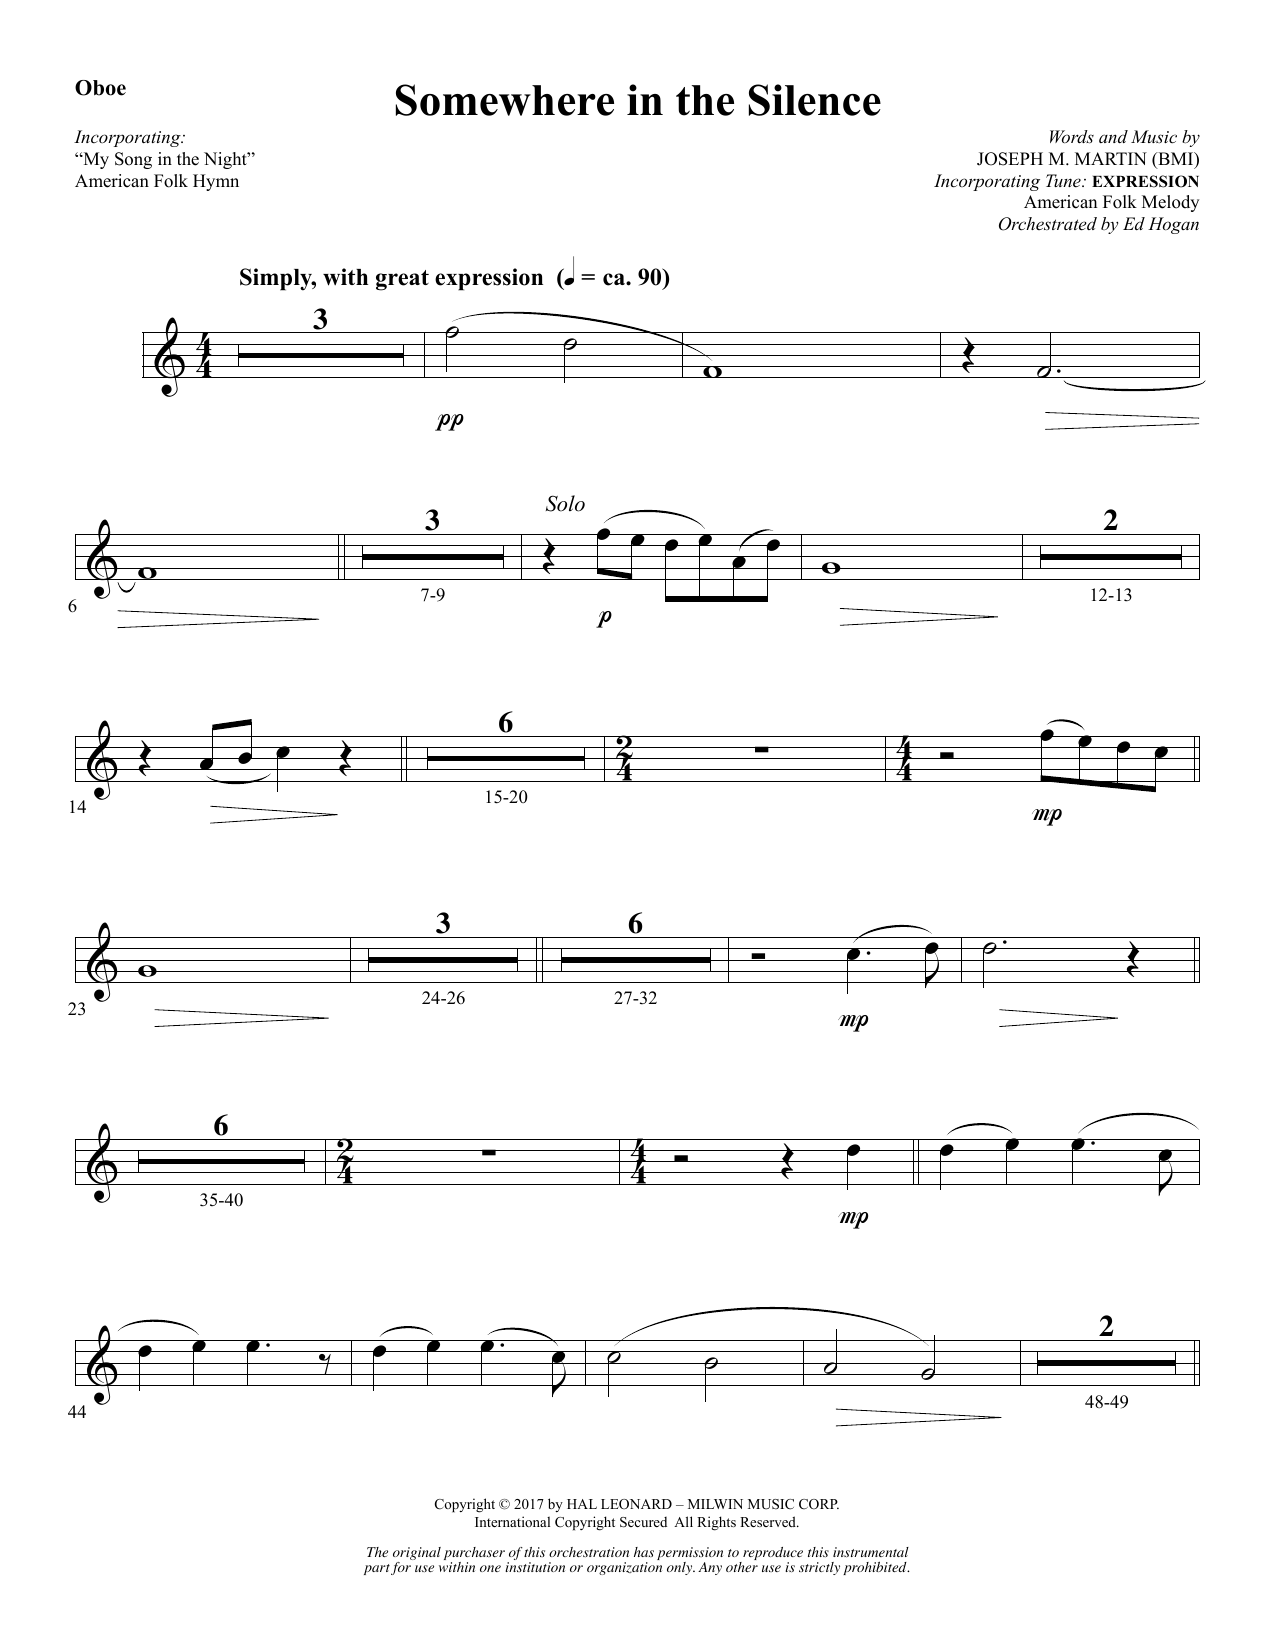 Joseph M. Martin Somewhere in the Silence - Oboe sheet music notes and chords. Download Printable PDF.